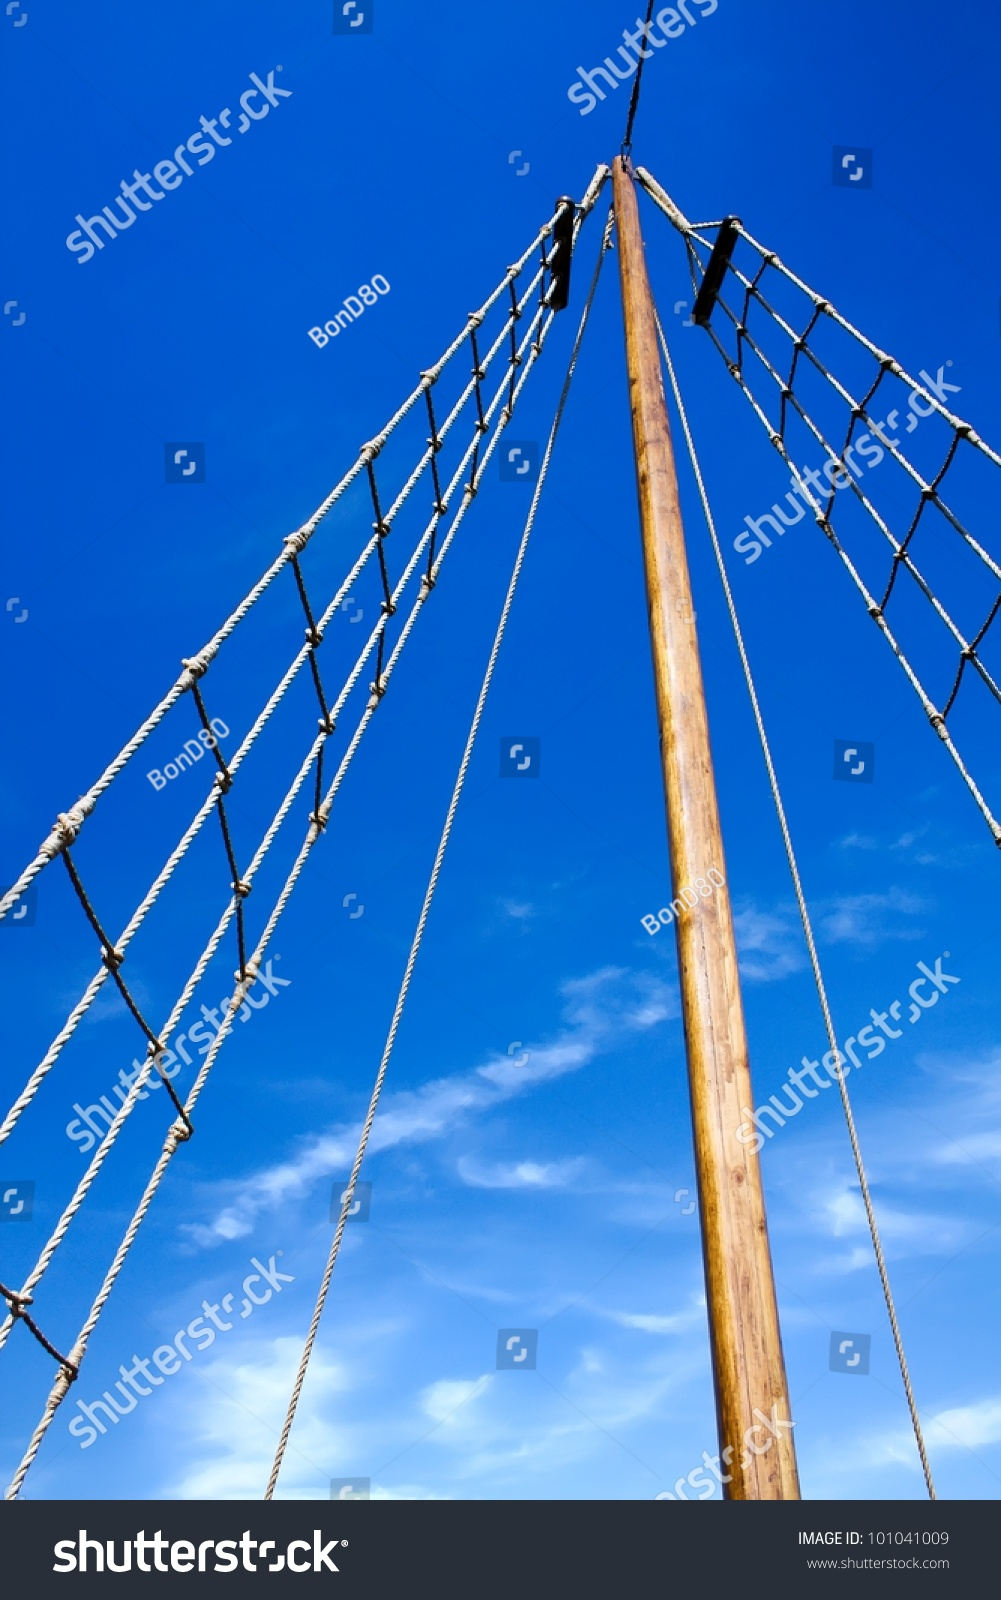 Marine Rope Ladder Ship Ladder Upstairs Stock Photo 101041009 ... for Rope Ladder Ship  300lyp